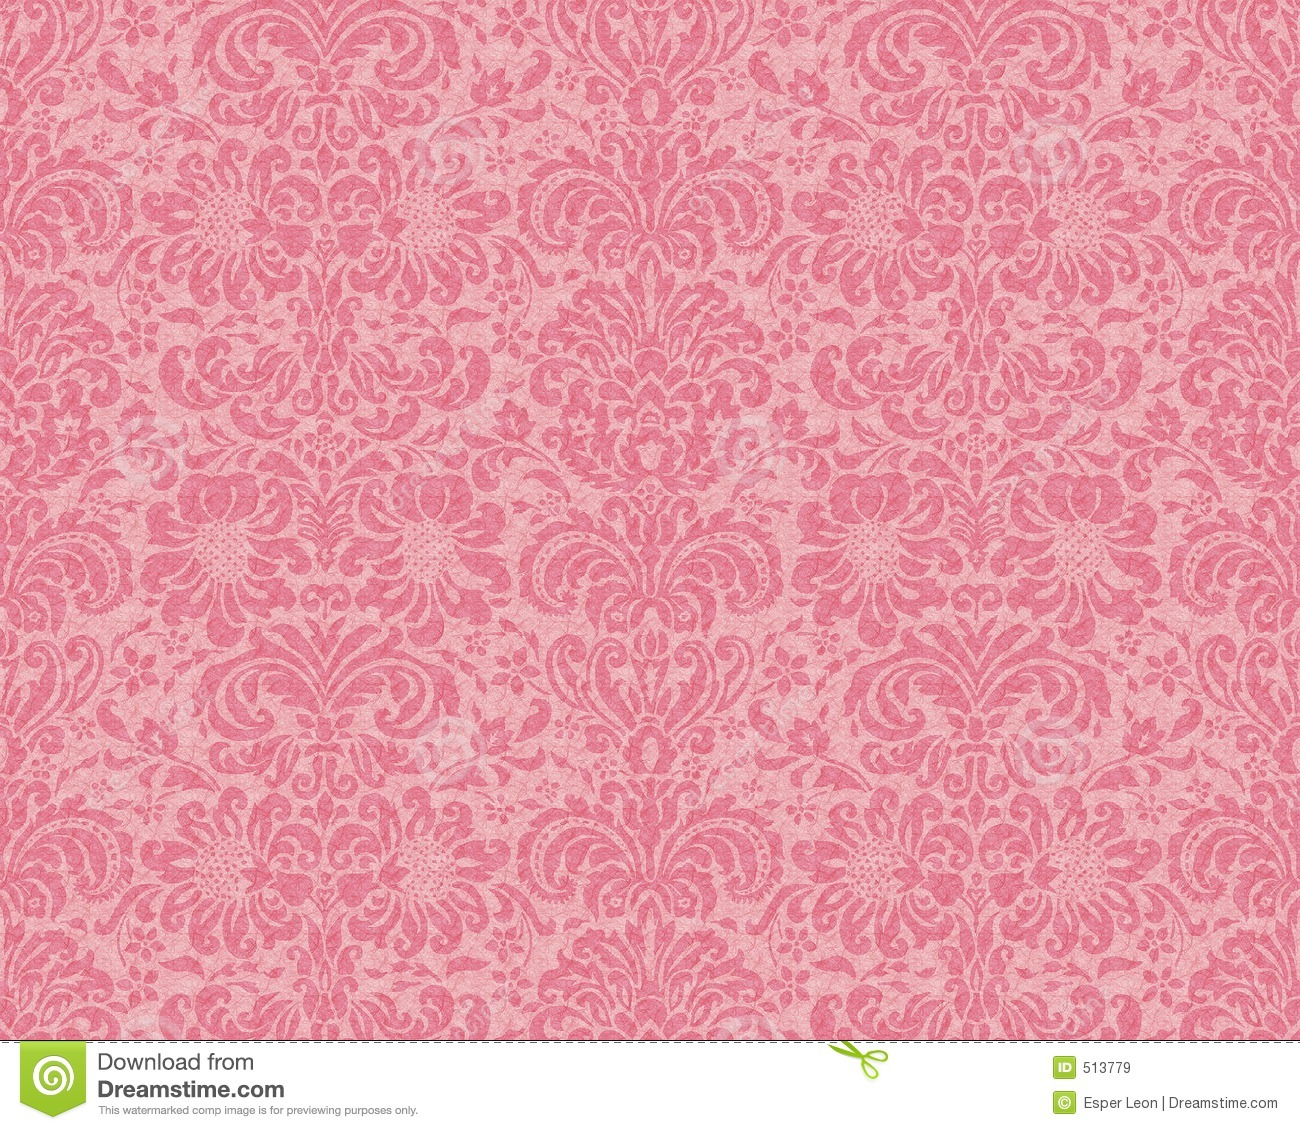 papier peint victorien rose illustration stock illustration du texture wallpaper 513779. Black Bedroom Furniture Sets. Home Design Ideas